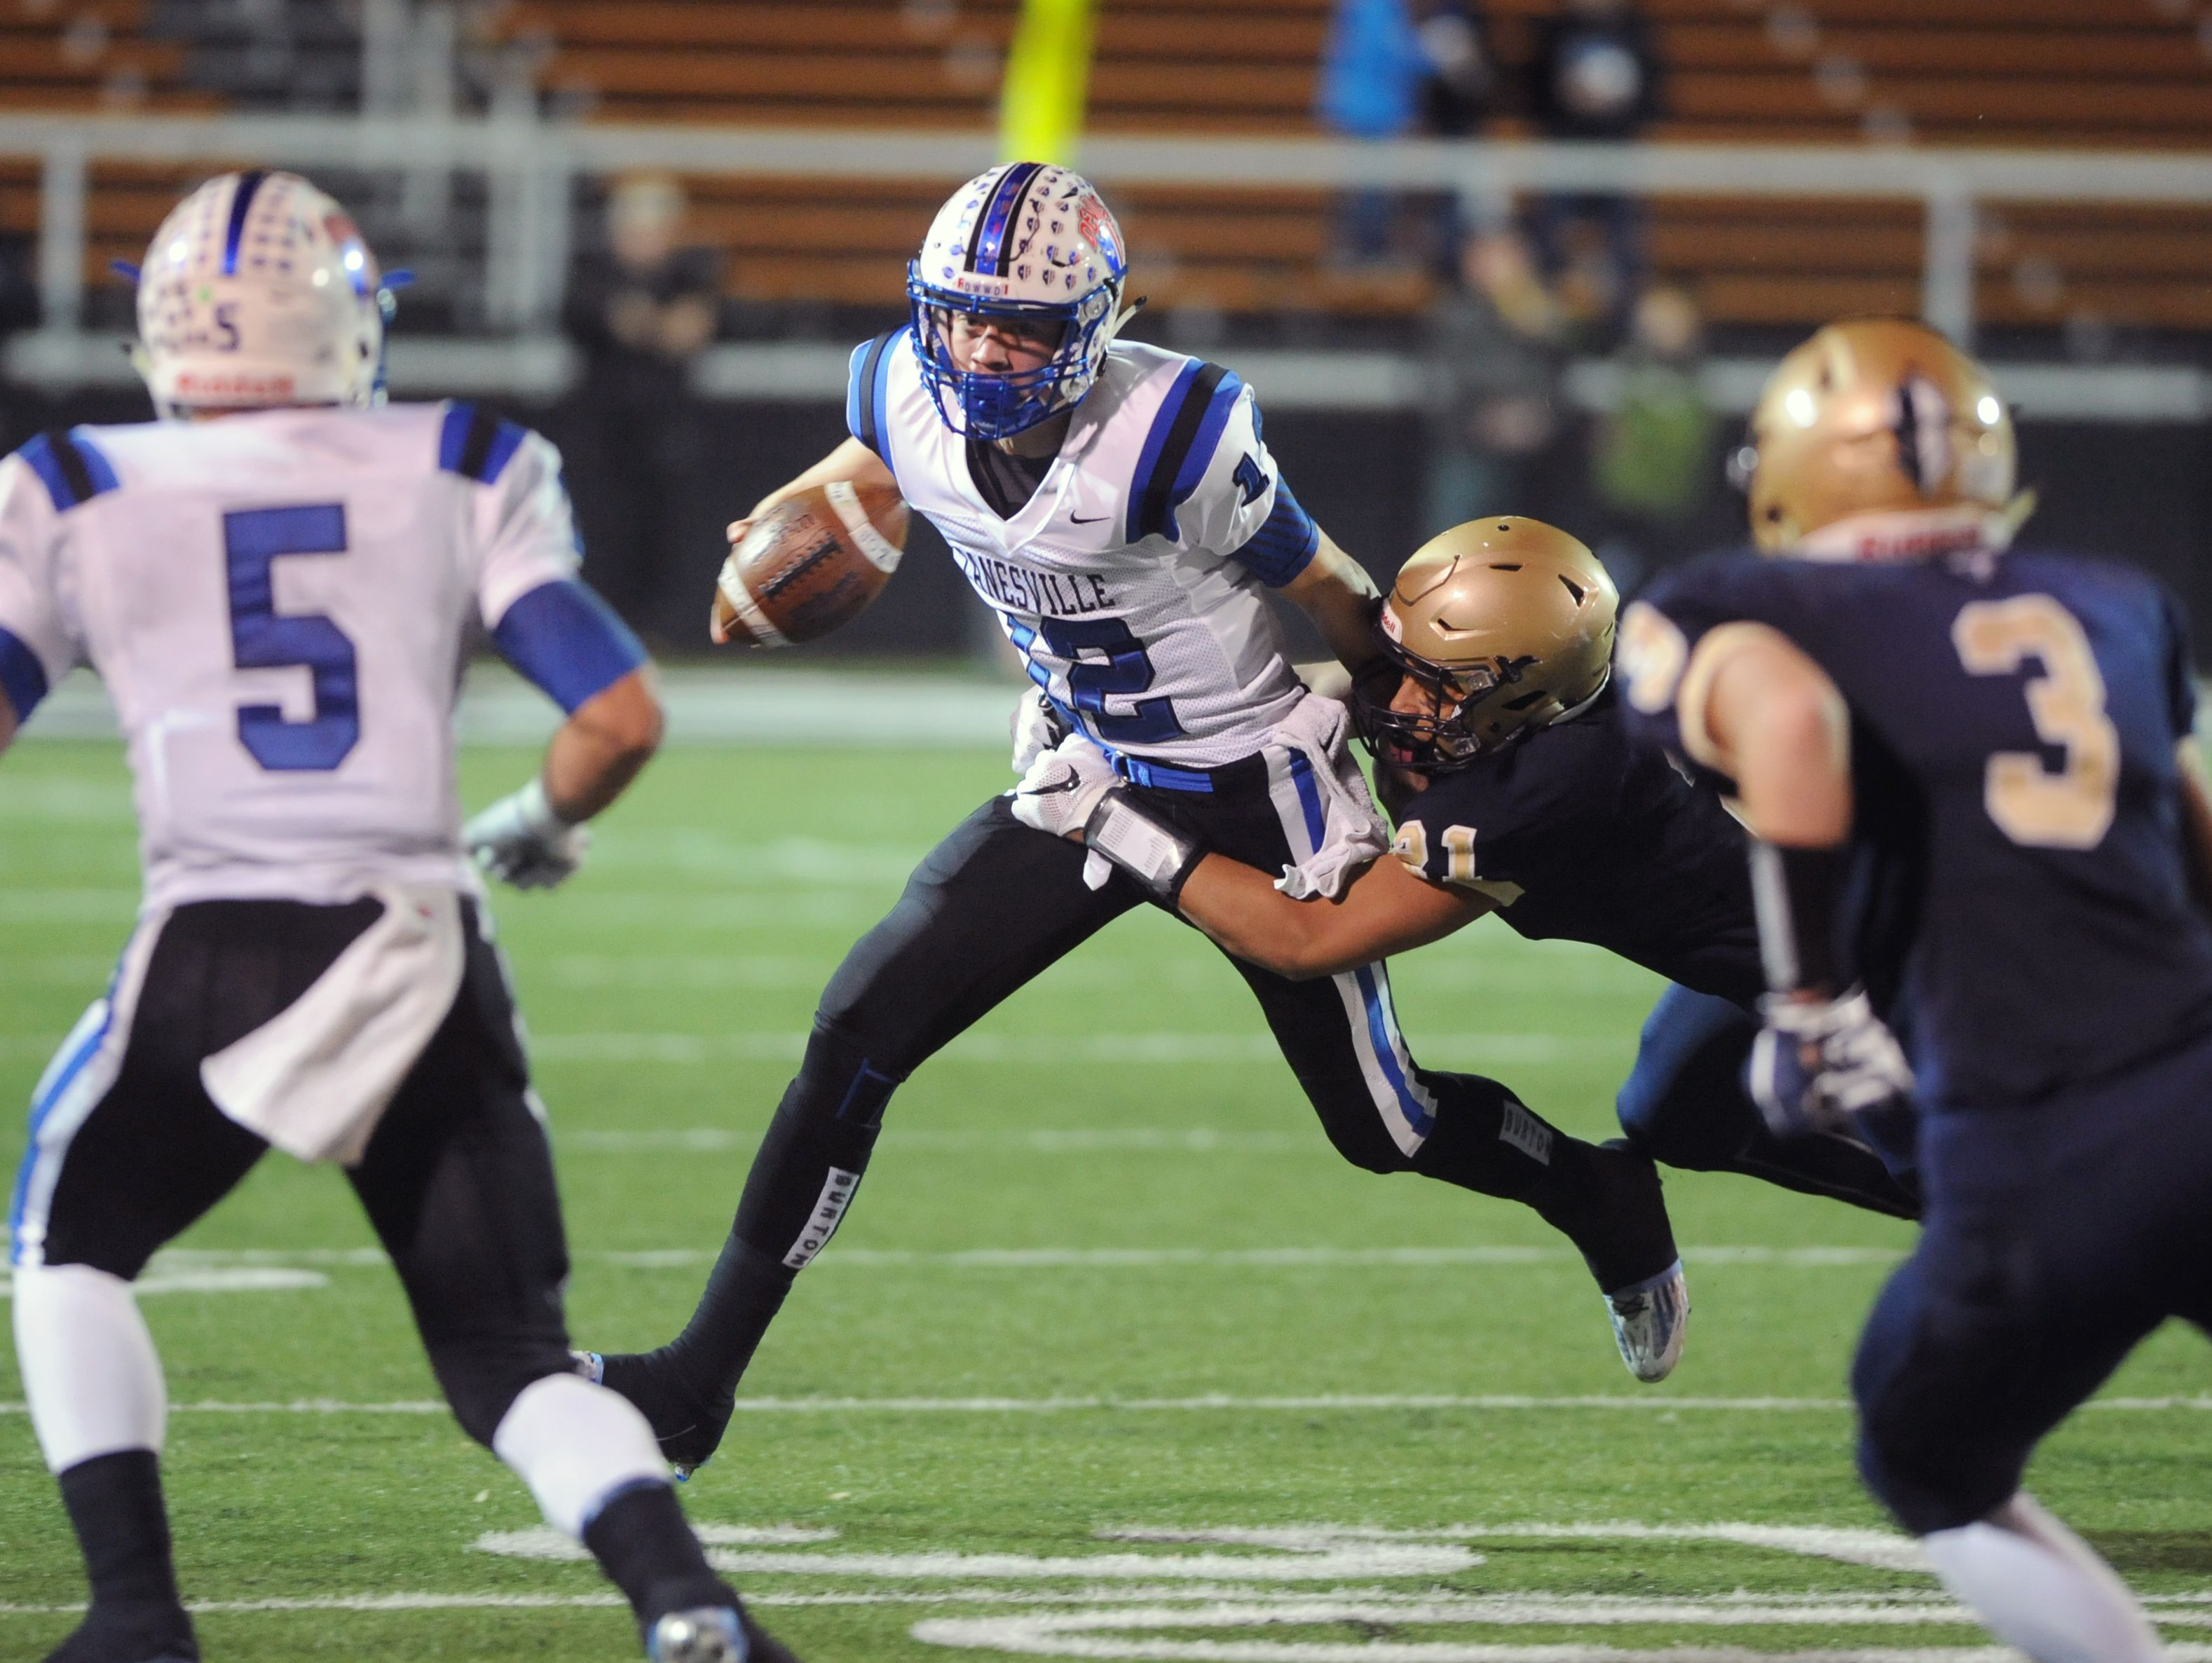 Akron Hoban's Tyler Gilchrist pulls down Zanesville's Derek Grandstaff on Friday night during the Division III state semifinals in Massillon. The Blue Devils' fell to the Knights, 33-21.